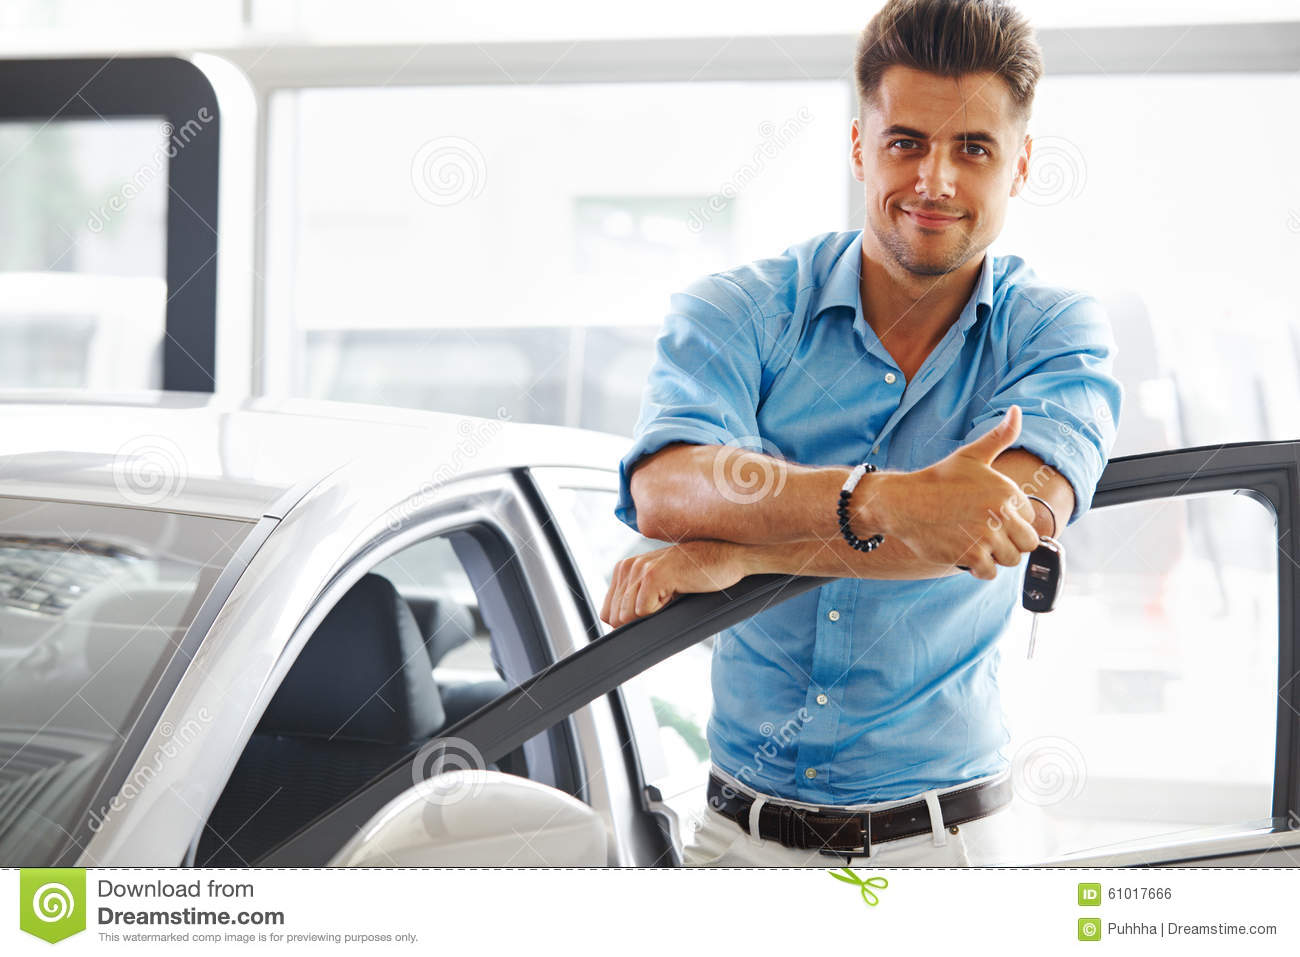 Car Showroom Happy Man With Keys To The Car Of His Dreams Stock Photo Image Of Retail Sales 61017666